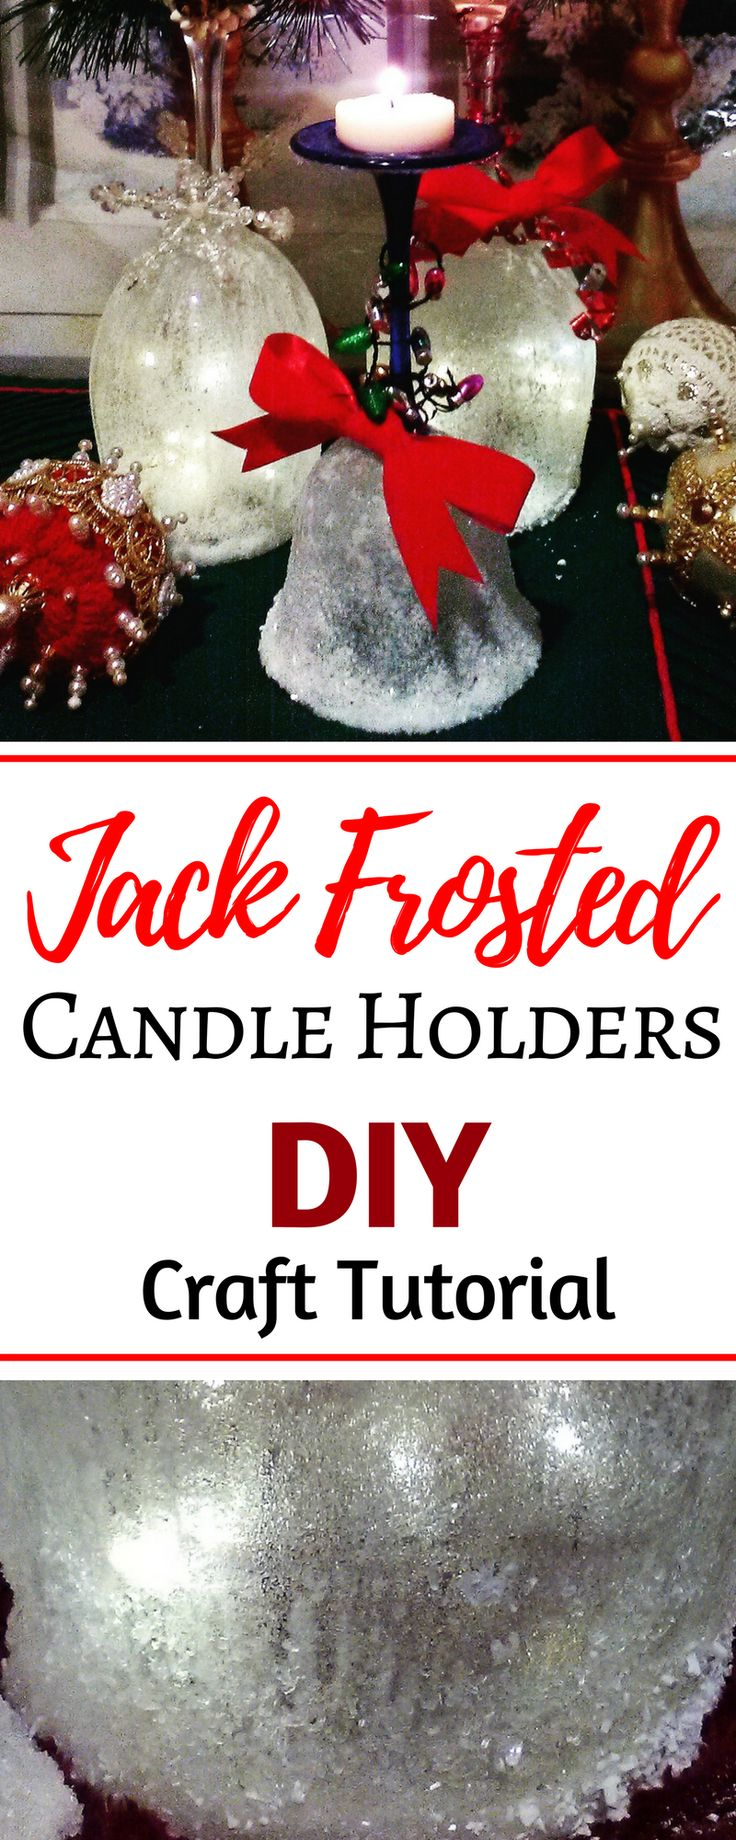 Magnificent frosted candle holders tutorial for the ultimate DIY centerpiece decorations. These ideas for easy beautiful homemade Christmas candles holders are perfect Christmas decorations for the home. These cheap Christmas crafts for kids to make with items from the Dollar store are perfect for toddlers and for adults! PLUS 25 other Christmas crafts diy and Christmas recipes! #Christmas #Christmasdecor #candles